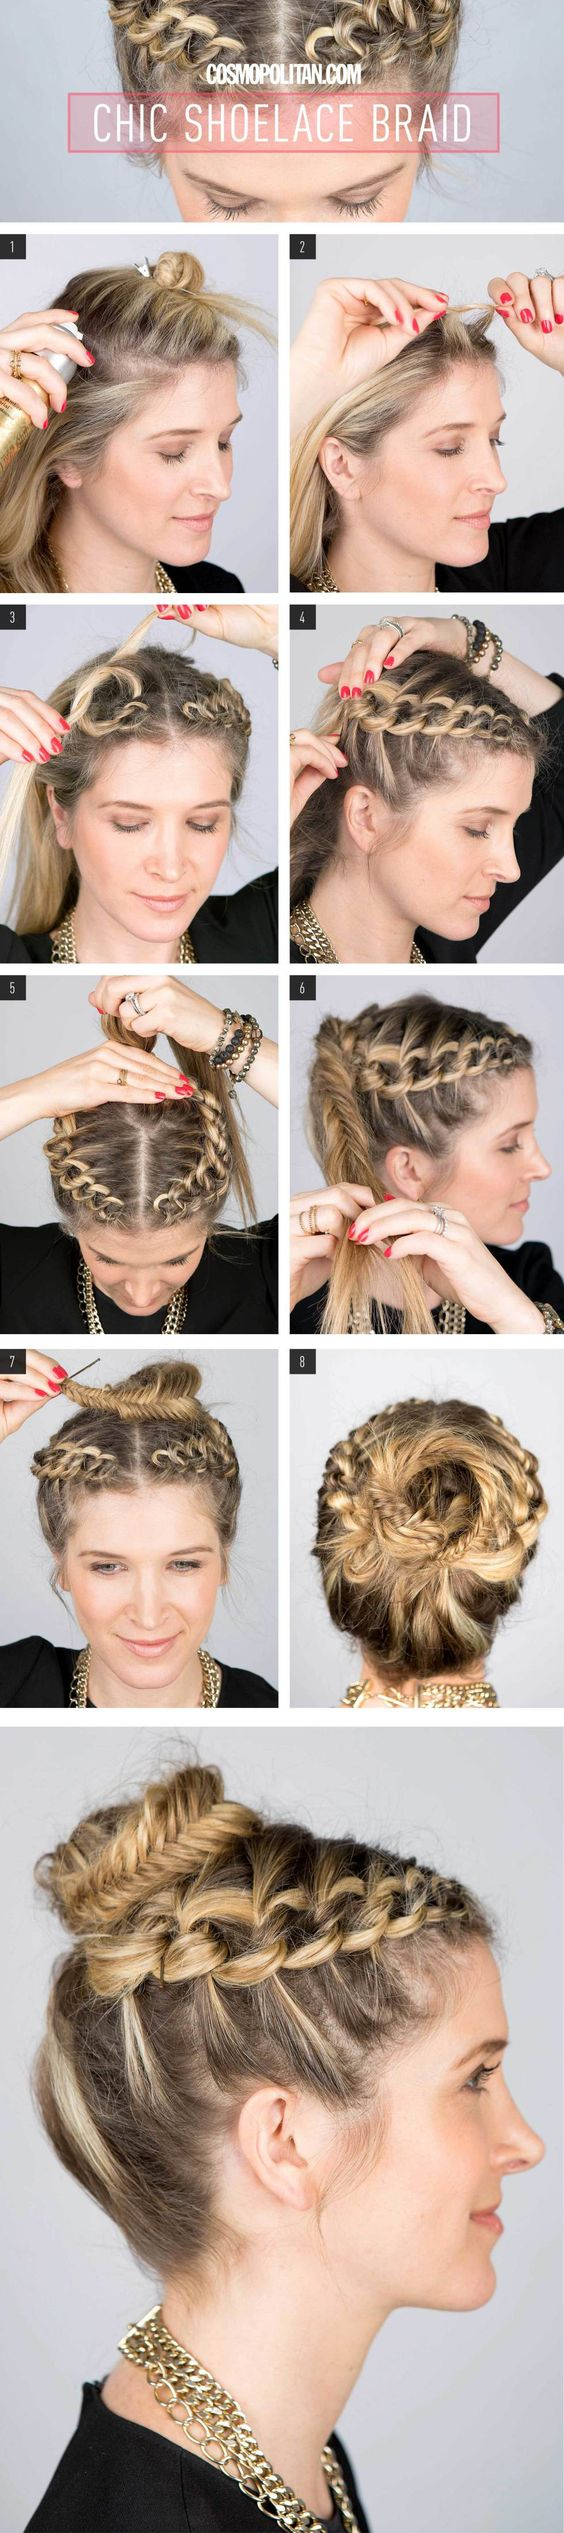 Brioches Tresses Petits Pains And Ides On Pinterest